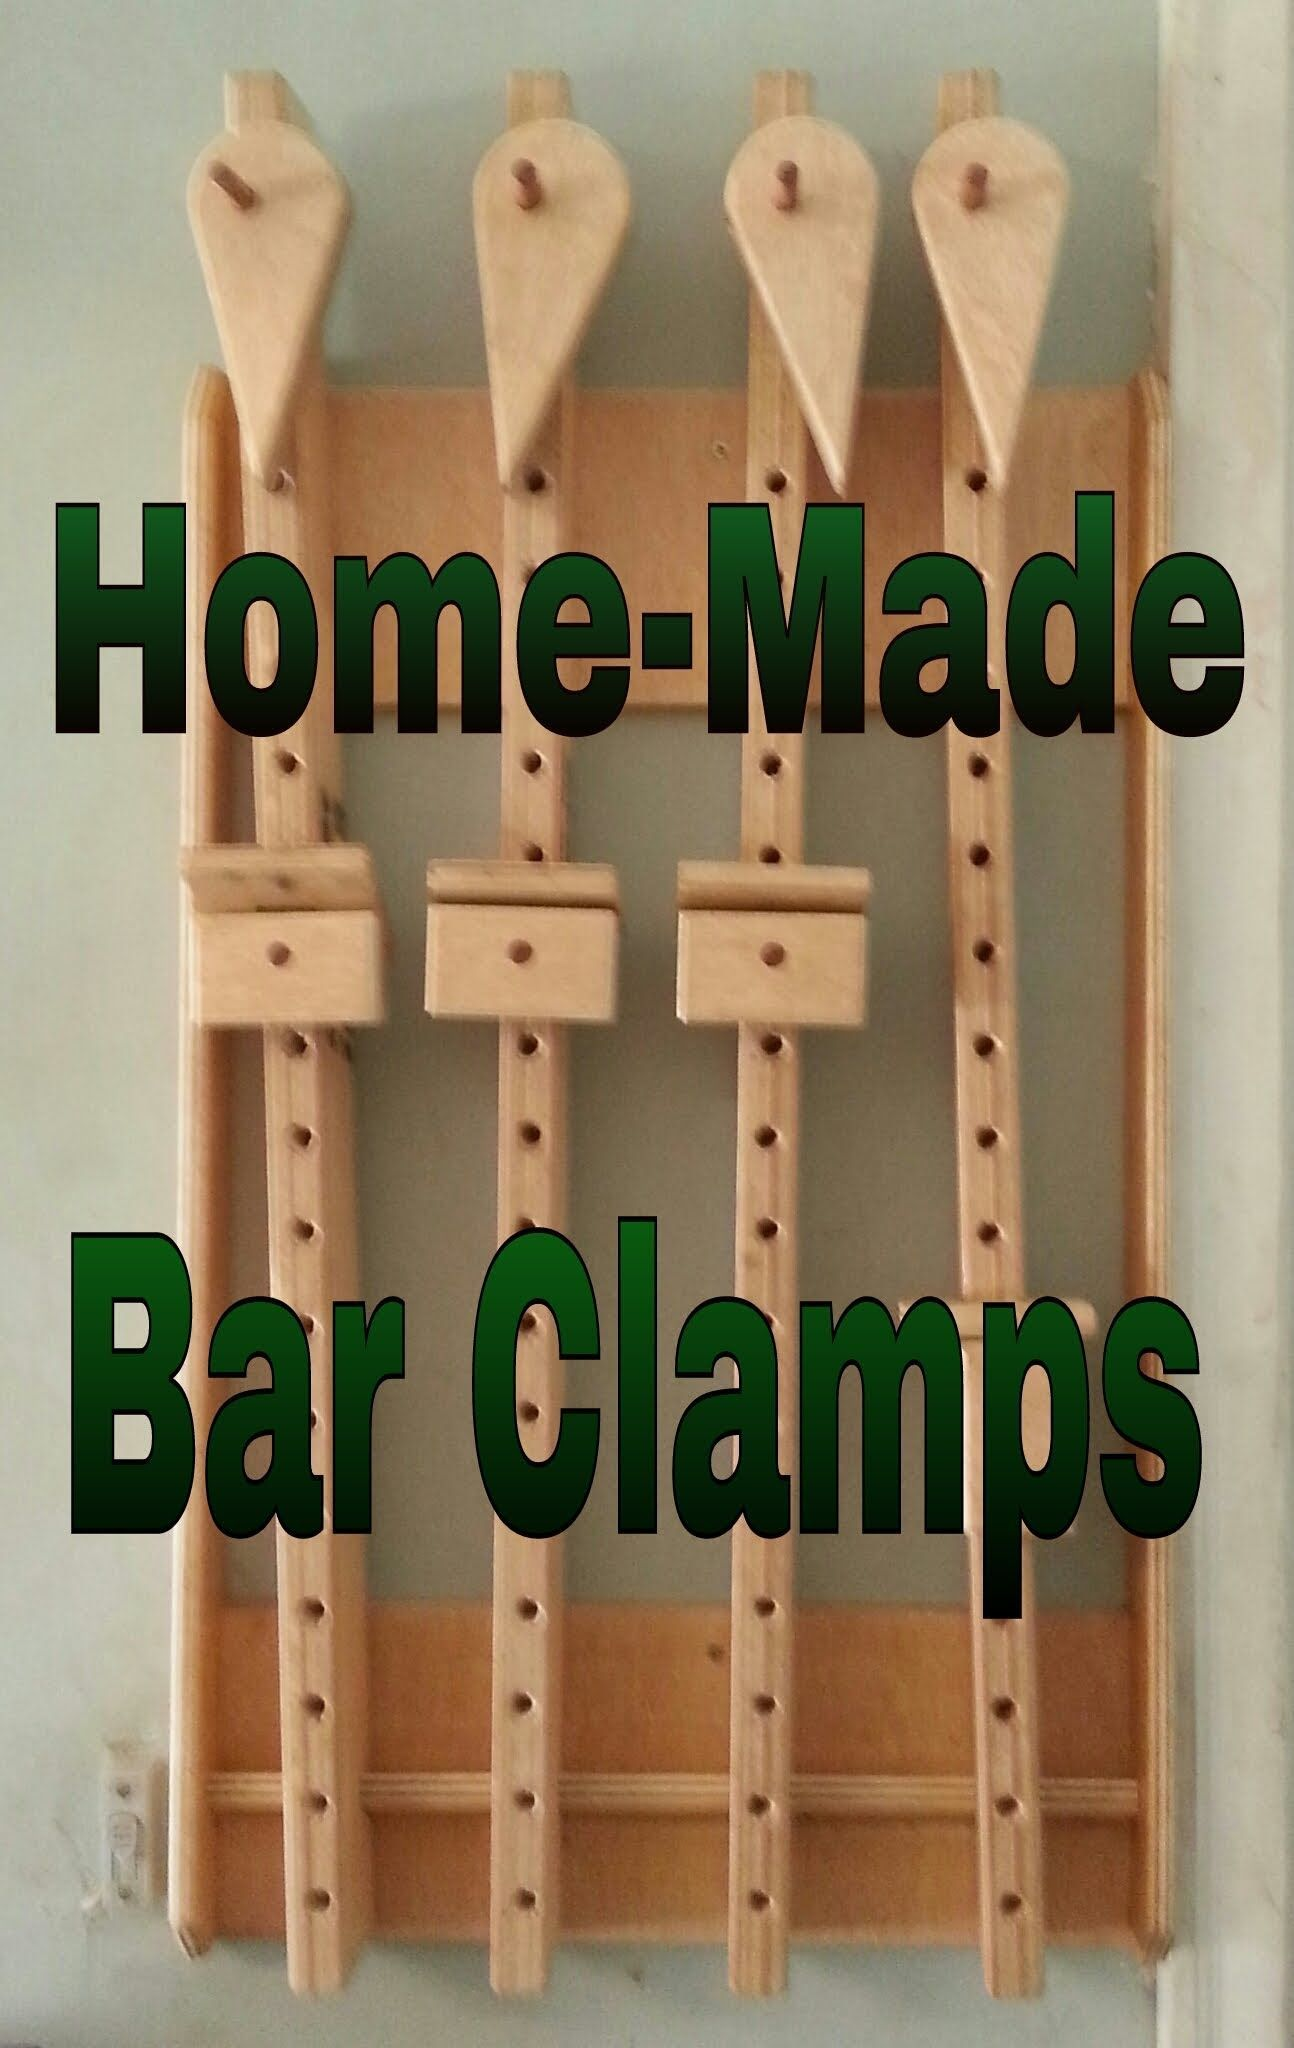 Homemade Bar Clamps These Are Simple And Look Easy To Make Not For